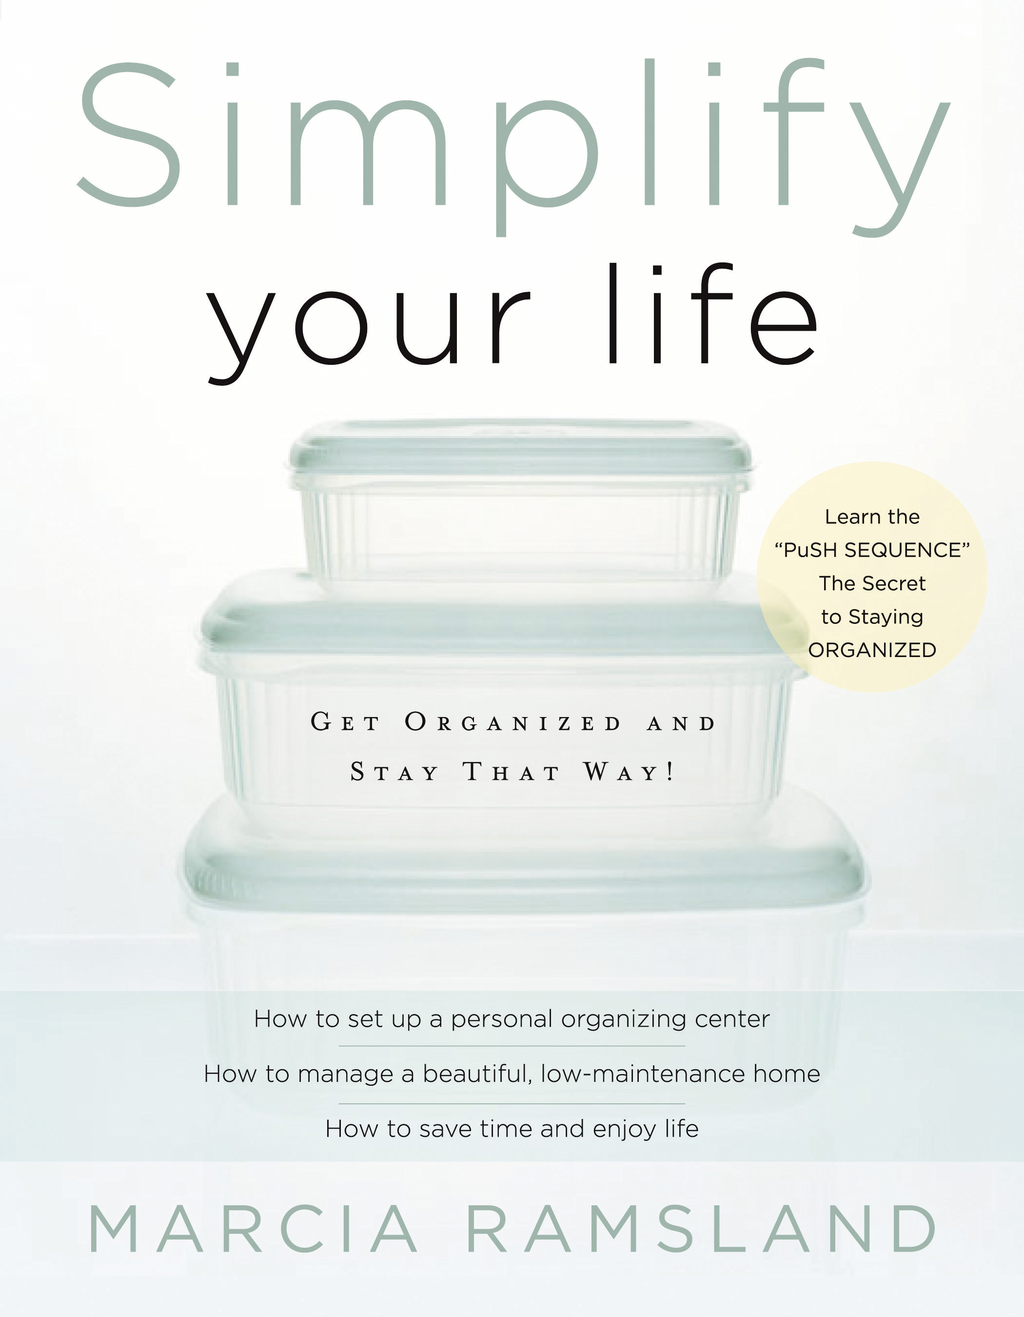 Simplify Your Life By: Marcia Ramsland